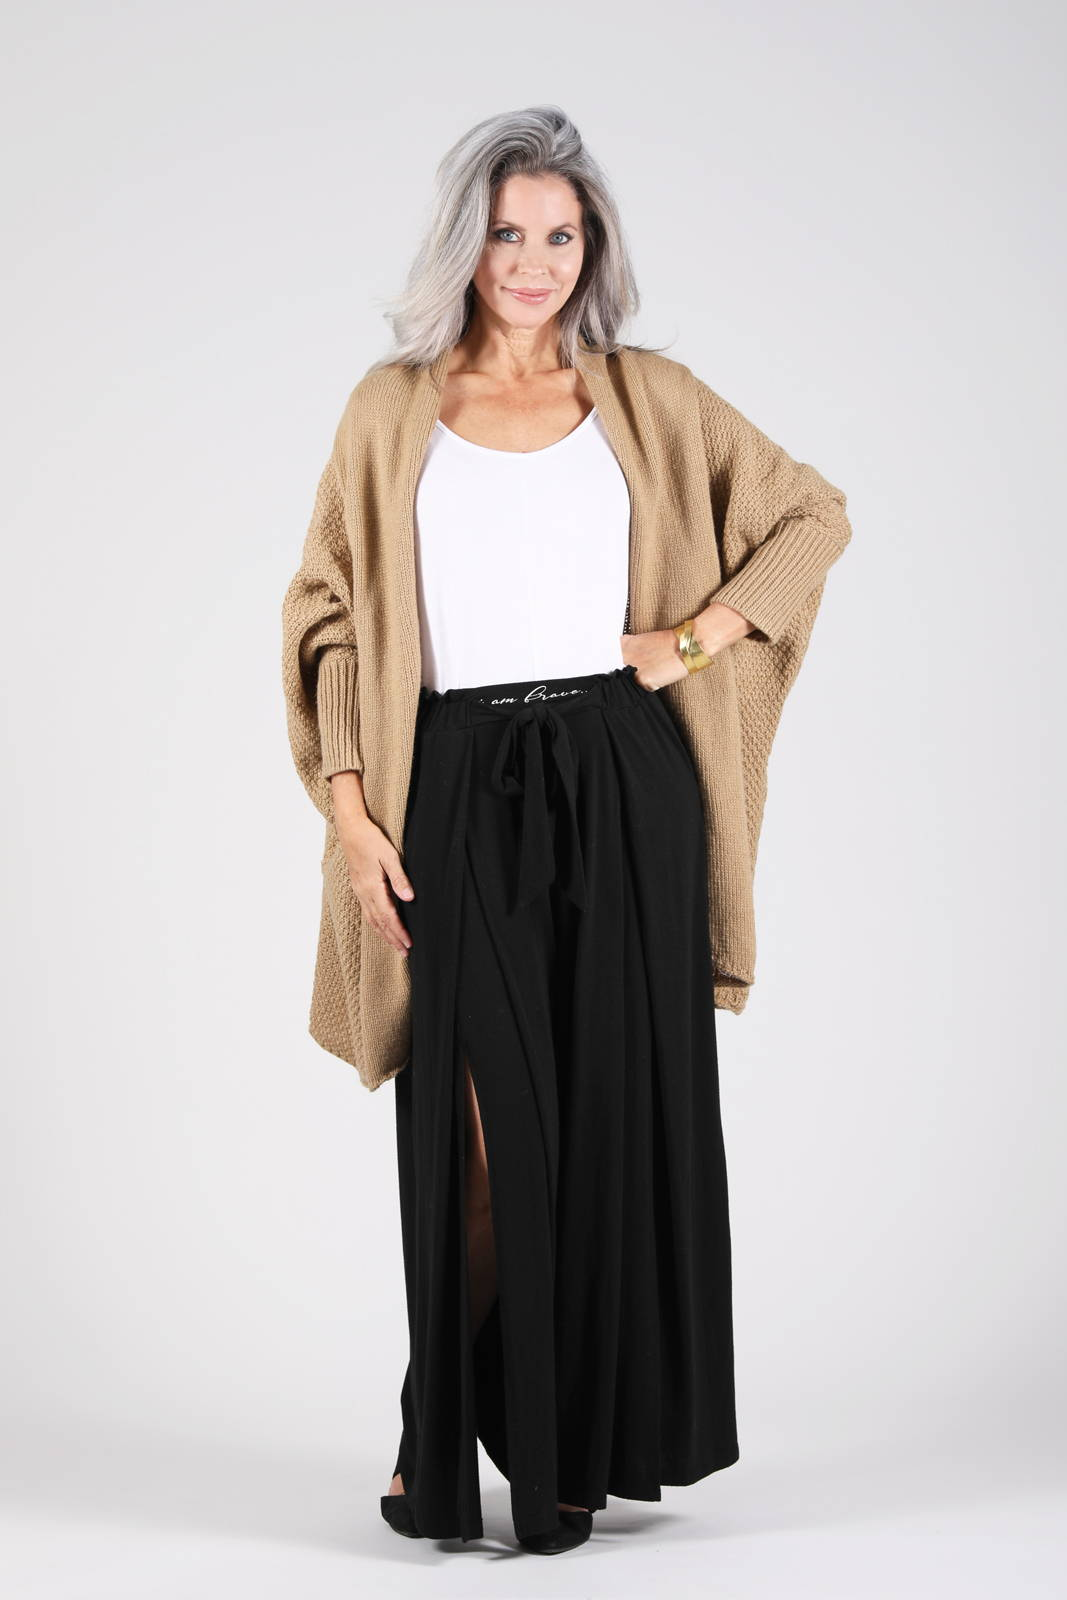 The Zeville Cocoon Cardigan in Camel with the Grian Pant